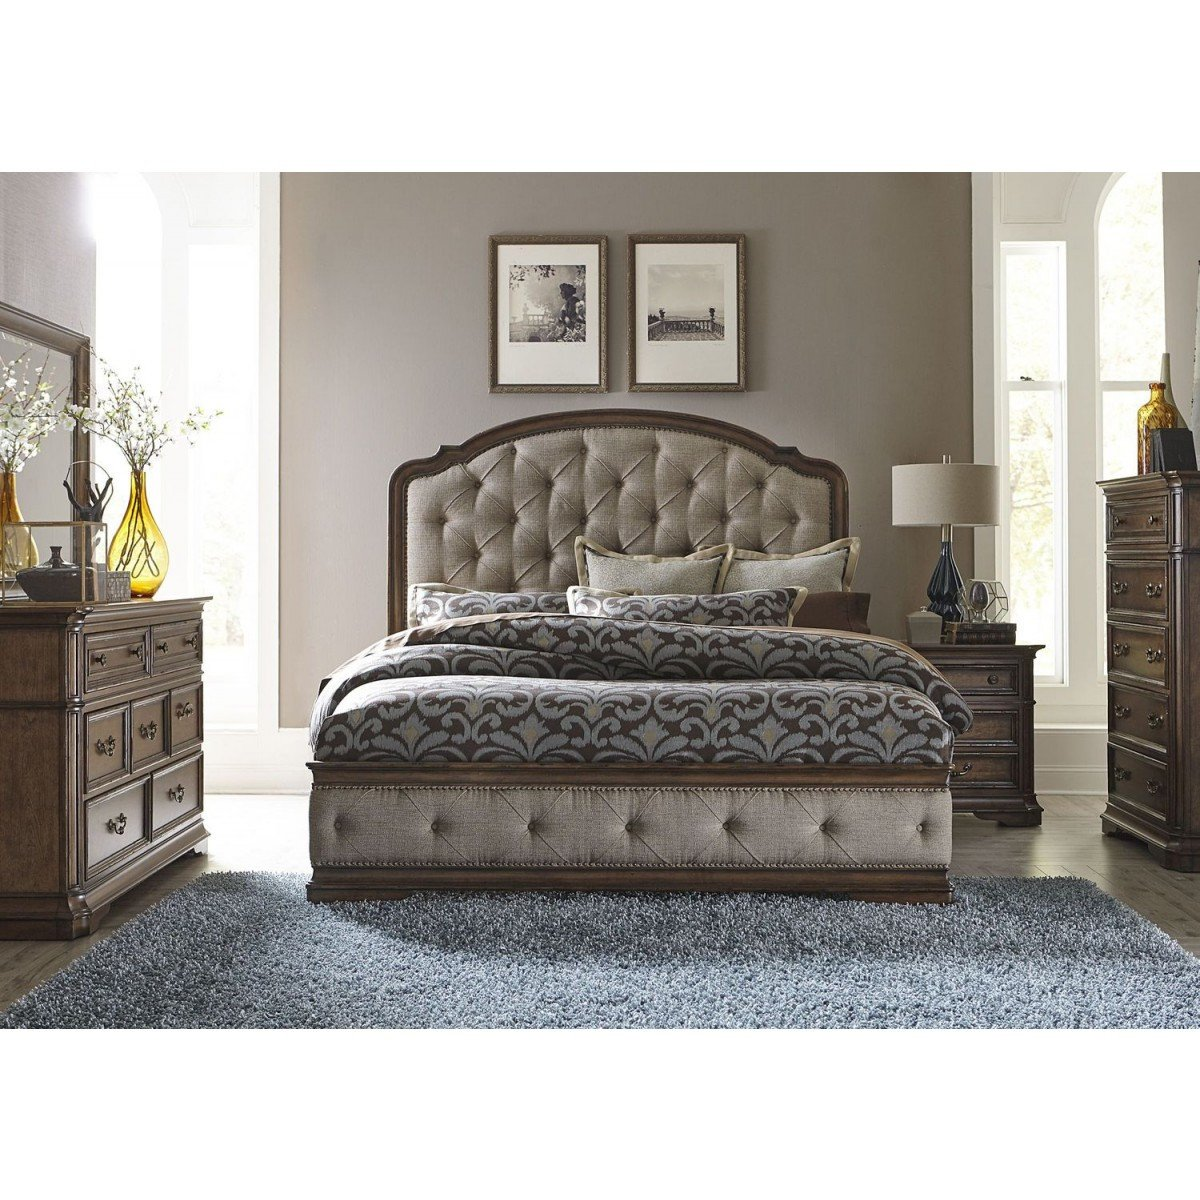 Tufted King Bedroom Set Elegant Liberty Furniture Amelia King Upholstered Bedroom Set 487 Br Kub